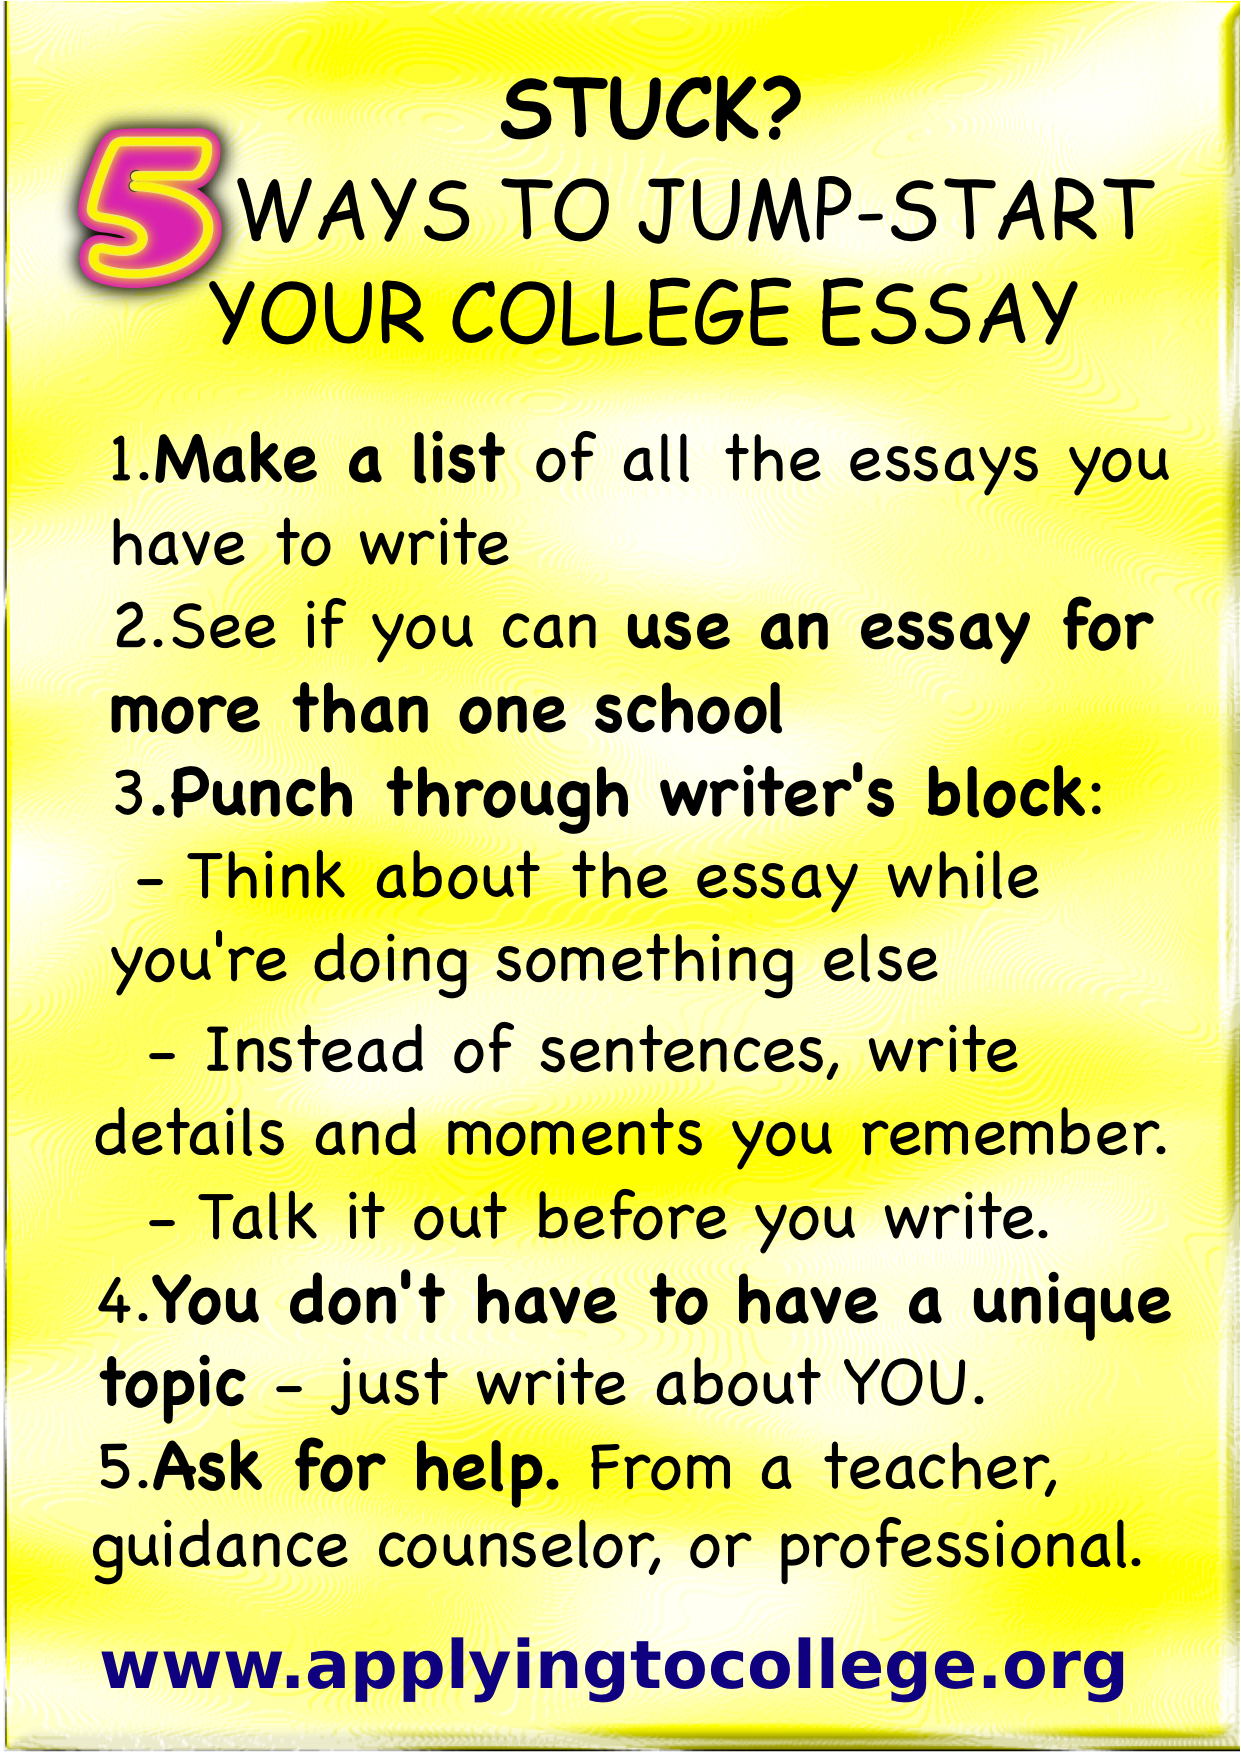 is college for essay what is college for essay